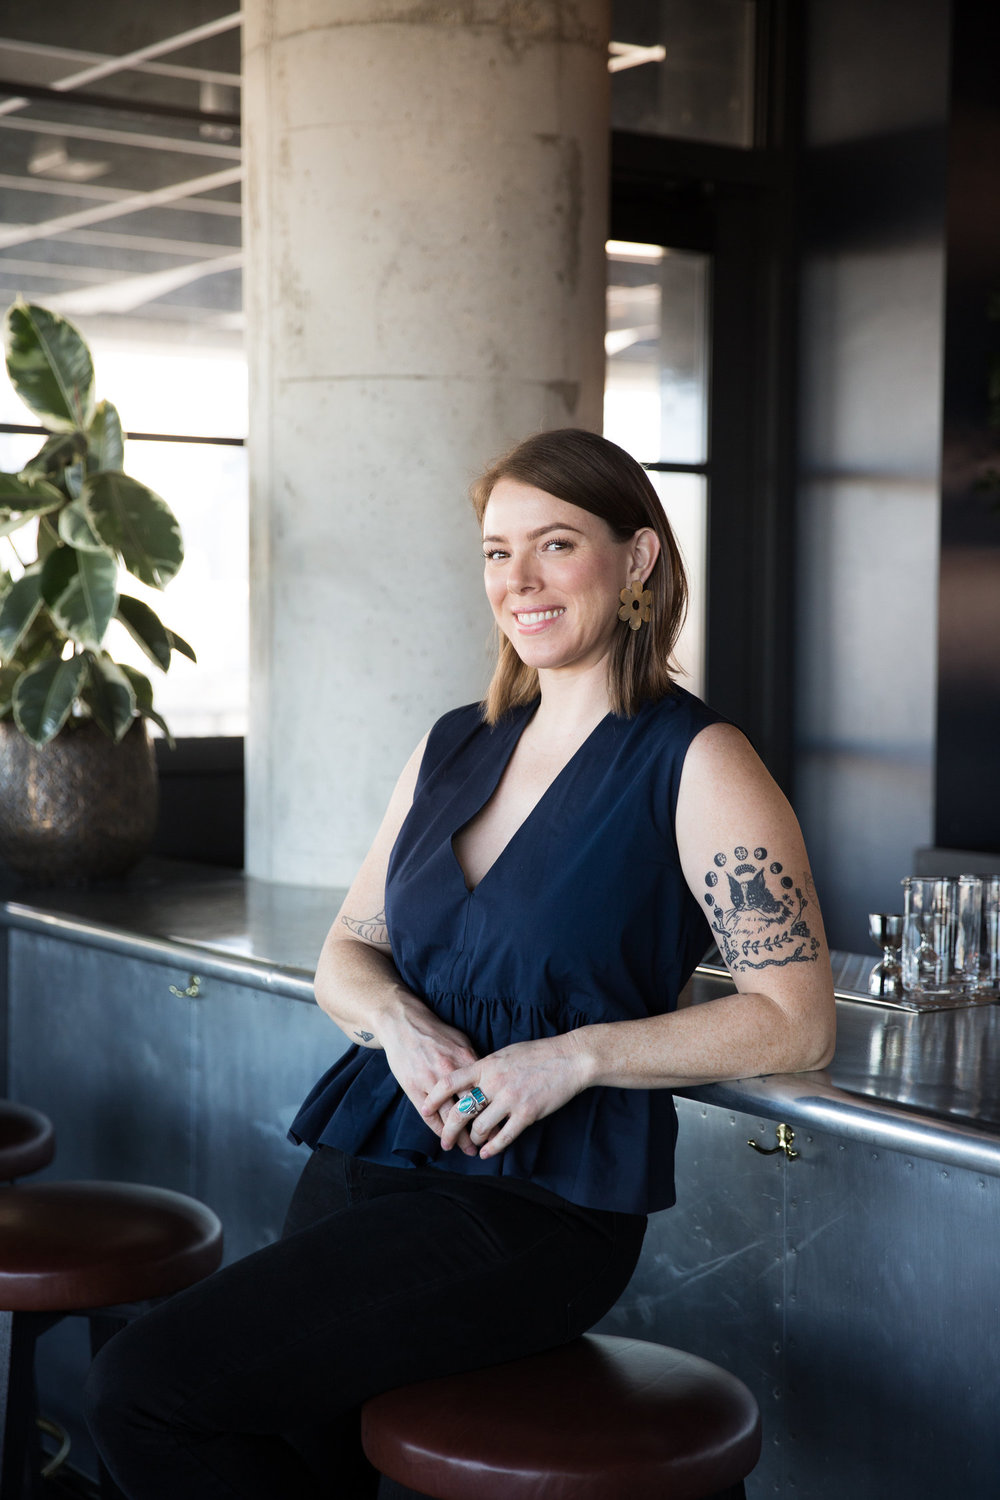 Shelby Allison - Shelby Allison co-owns Lost Lake, a tropical cocktail bar in Chicago that opened in 2015 and has thrice been a James Beard Foundation semifinalist for Outstanding Bar Program (2016, 2017, 2018), as well as one of Esquire's Best Bars in America (2017). Shelby is also a co-owner of Banana Daiquiri, LLC, a creative partnership and consulting company that builds unique cocktail programs and immersive guest experiences for clients around the country. Shelby co-founded Chicago Style, a forward-thinking cocktail conference centered on equity, safety, and sustainability, as well as #SHIFTEASE, a monthly charitable party at Lost Lake that supports local Chicago organizations working for progressive racial, economic and gender justice. She is also a founding board member of the Chicago Period Project, an aspiring non-profit that helps Chicago's homeless and in-need people experience their periods with dignity.